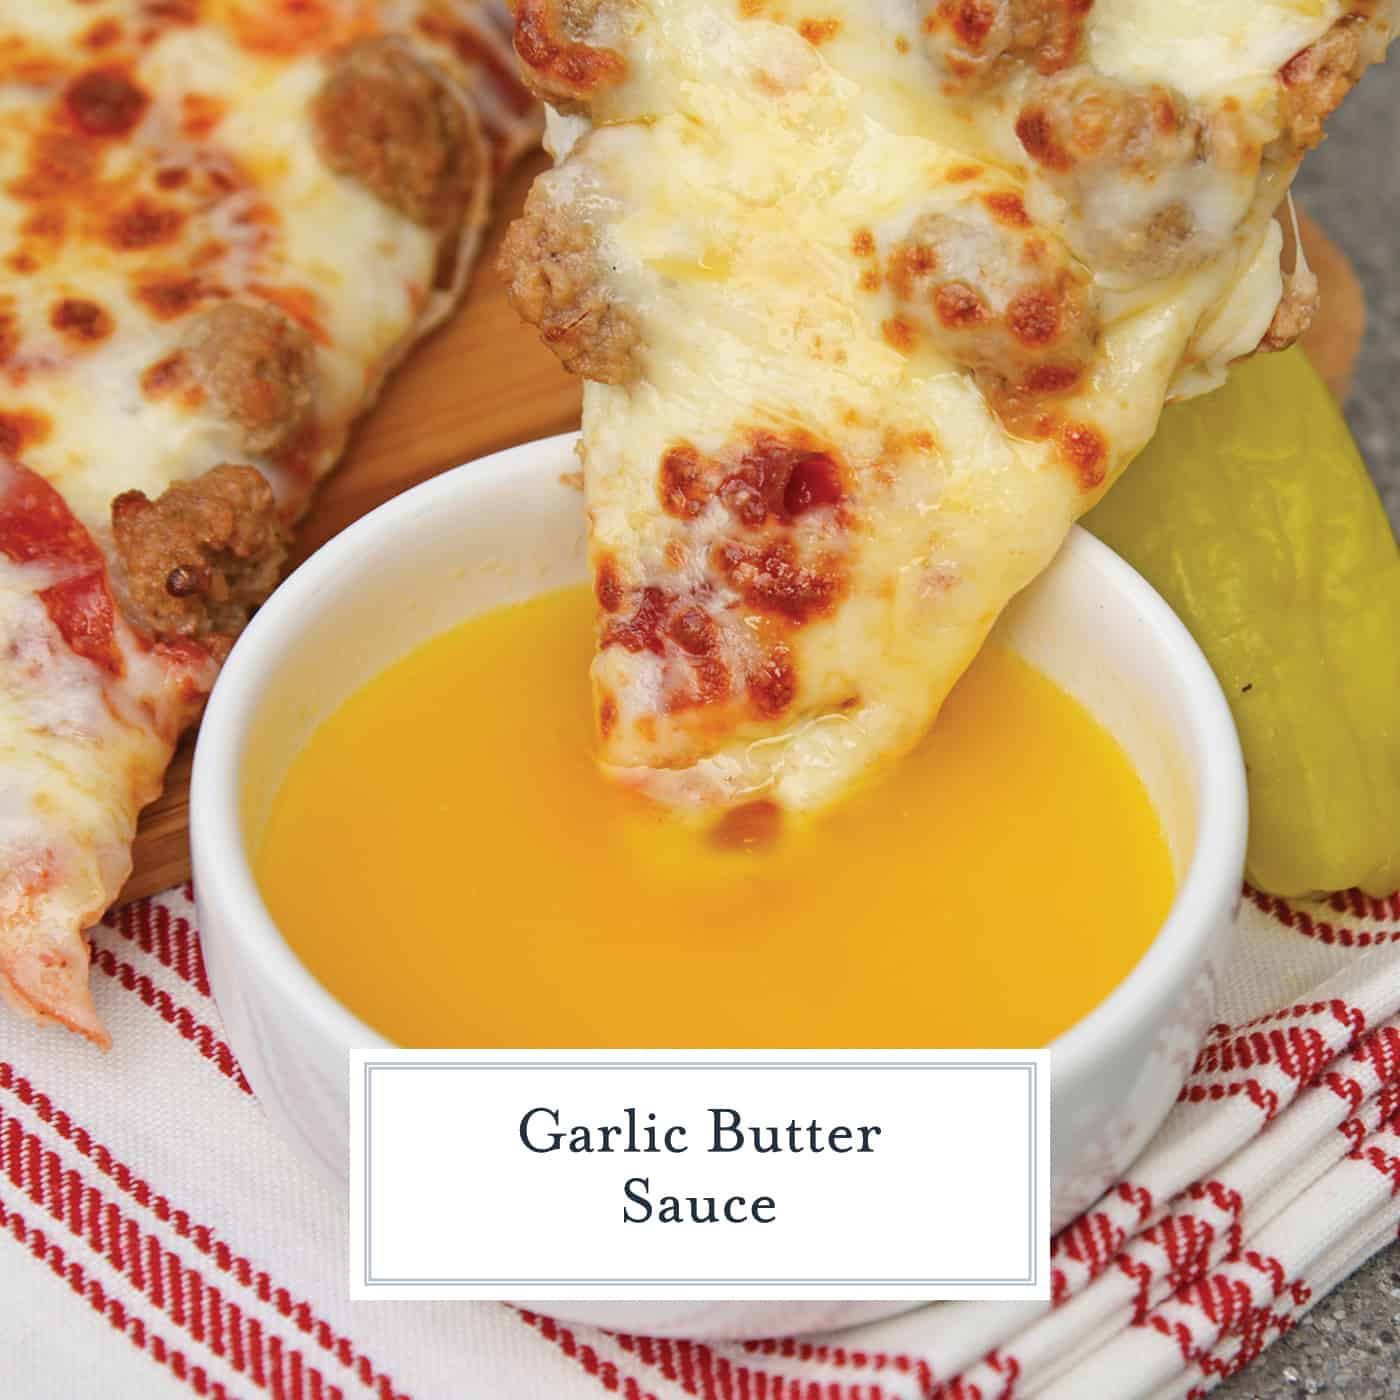 If you've ever wondered how to make garlic butter sauce, wonder no more. This recipe is just like the Papa John's dipping sauce for pizza or breadsticks! #garlicbuttersauce #howtomakegarlicbuttersauce #papajohnsdippingsauce www.savoryexperiments.com